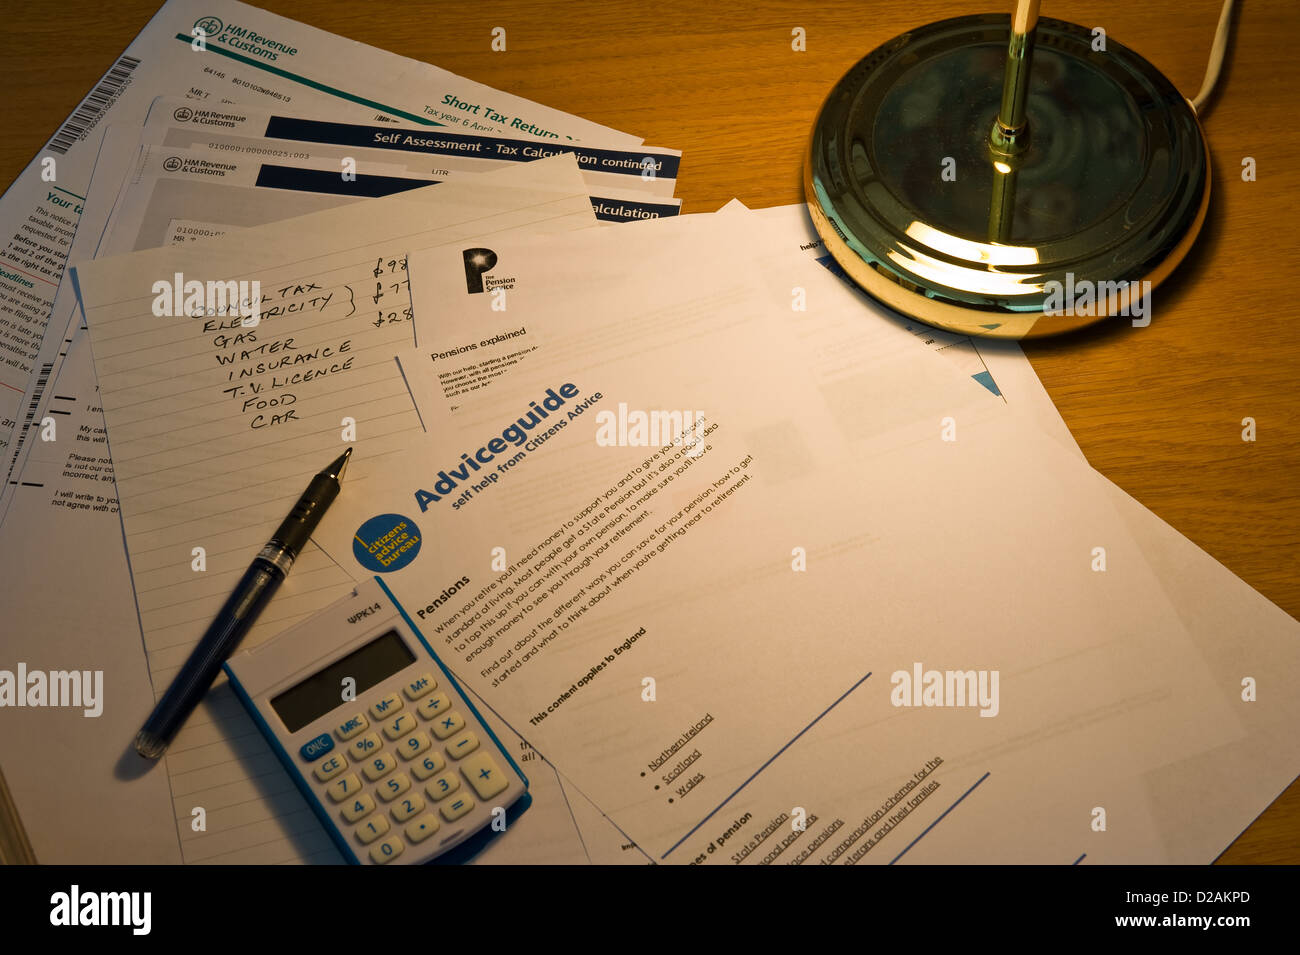 Calculating household expenses. - Stock Image